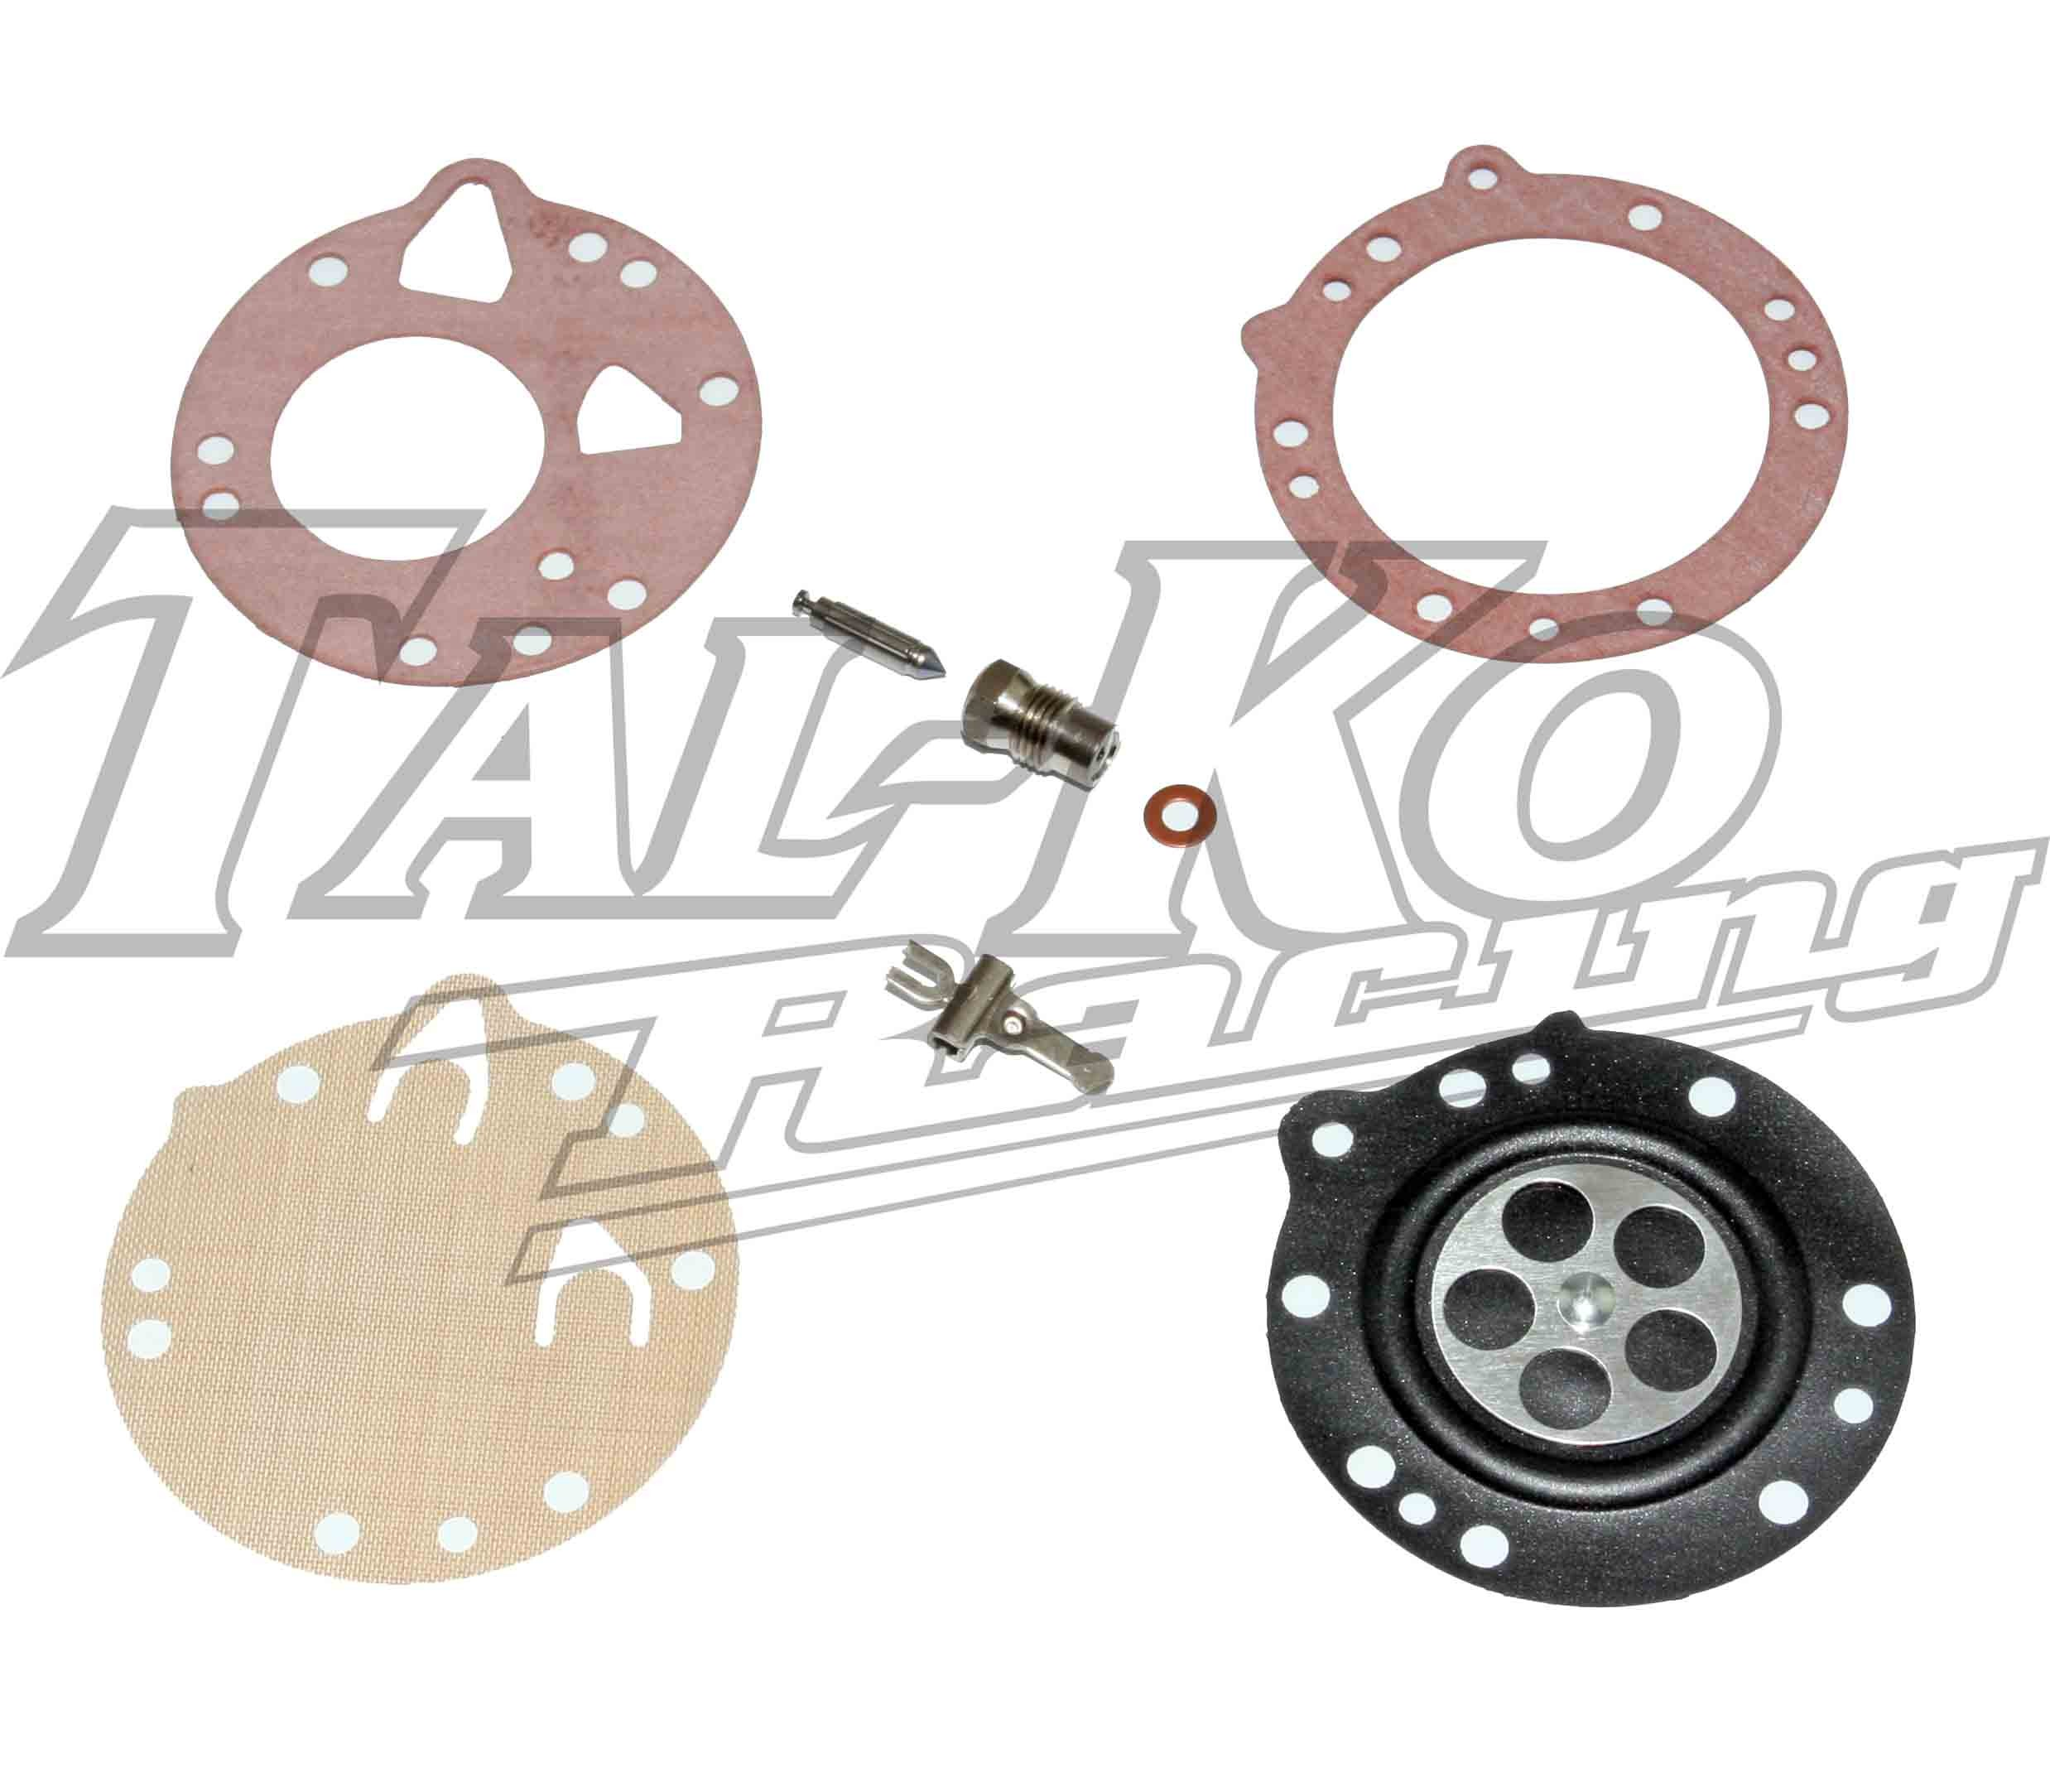 WTP60 CARB REPAIR KIT